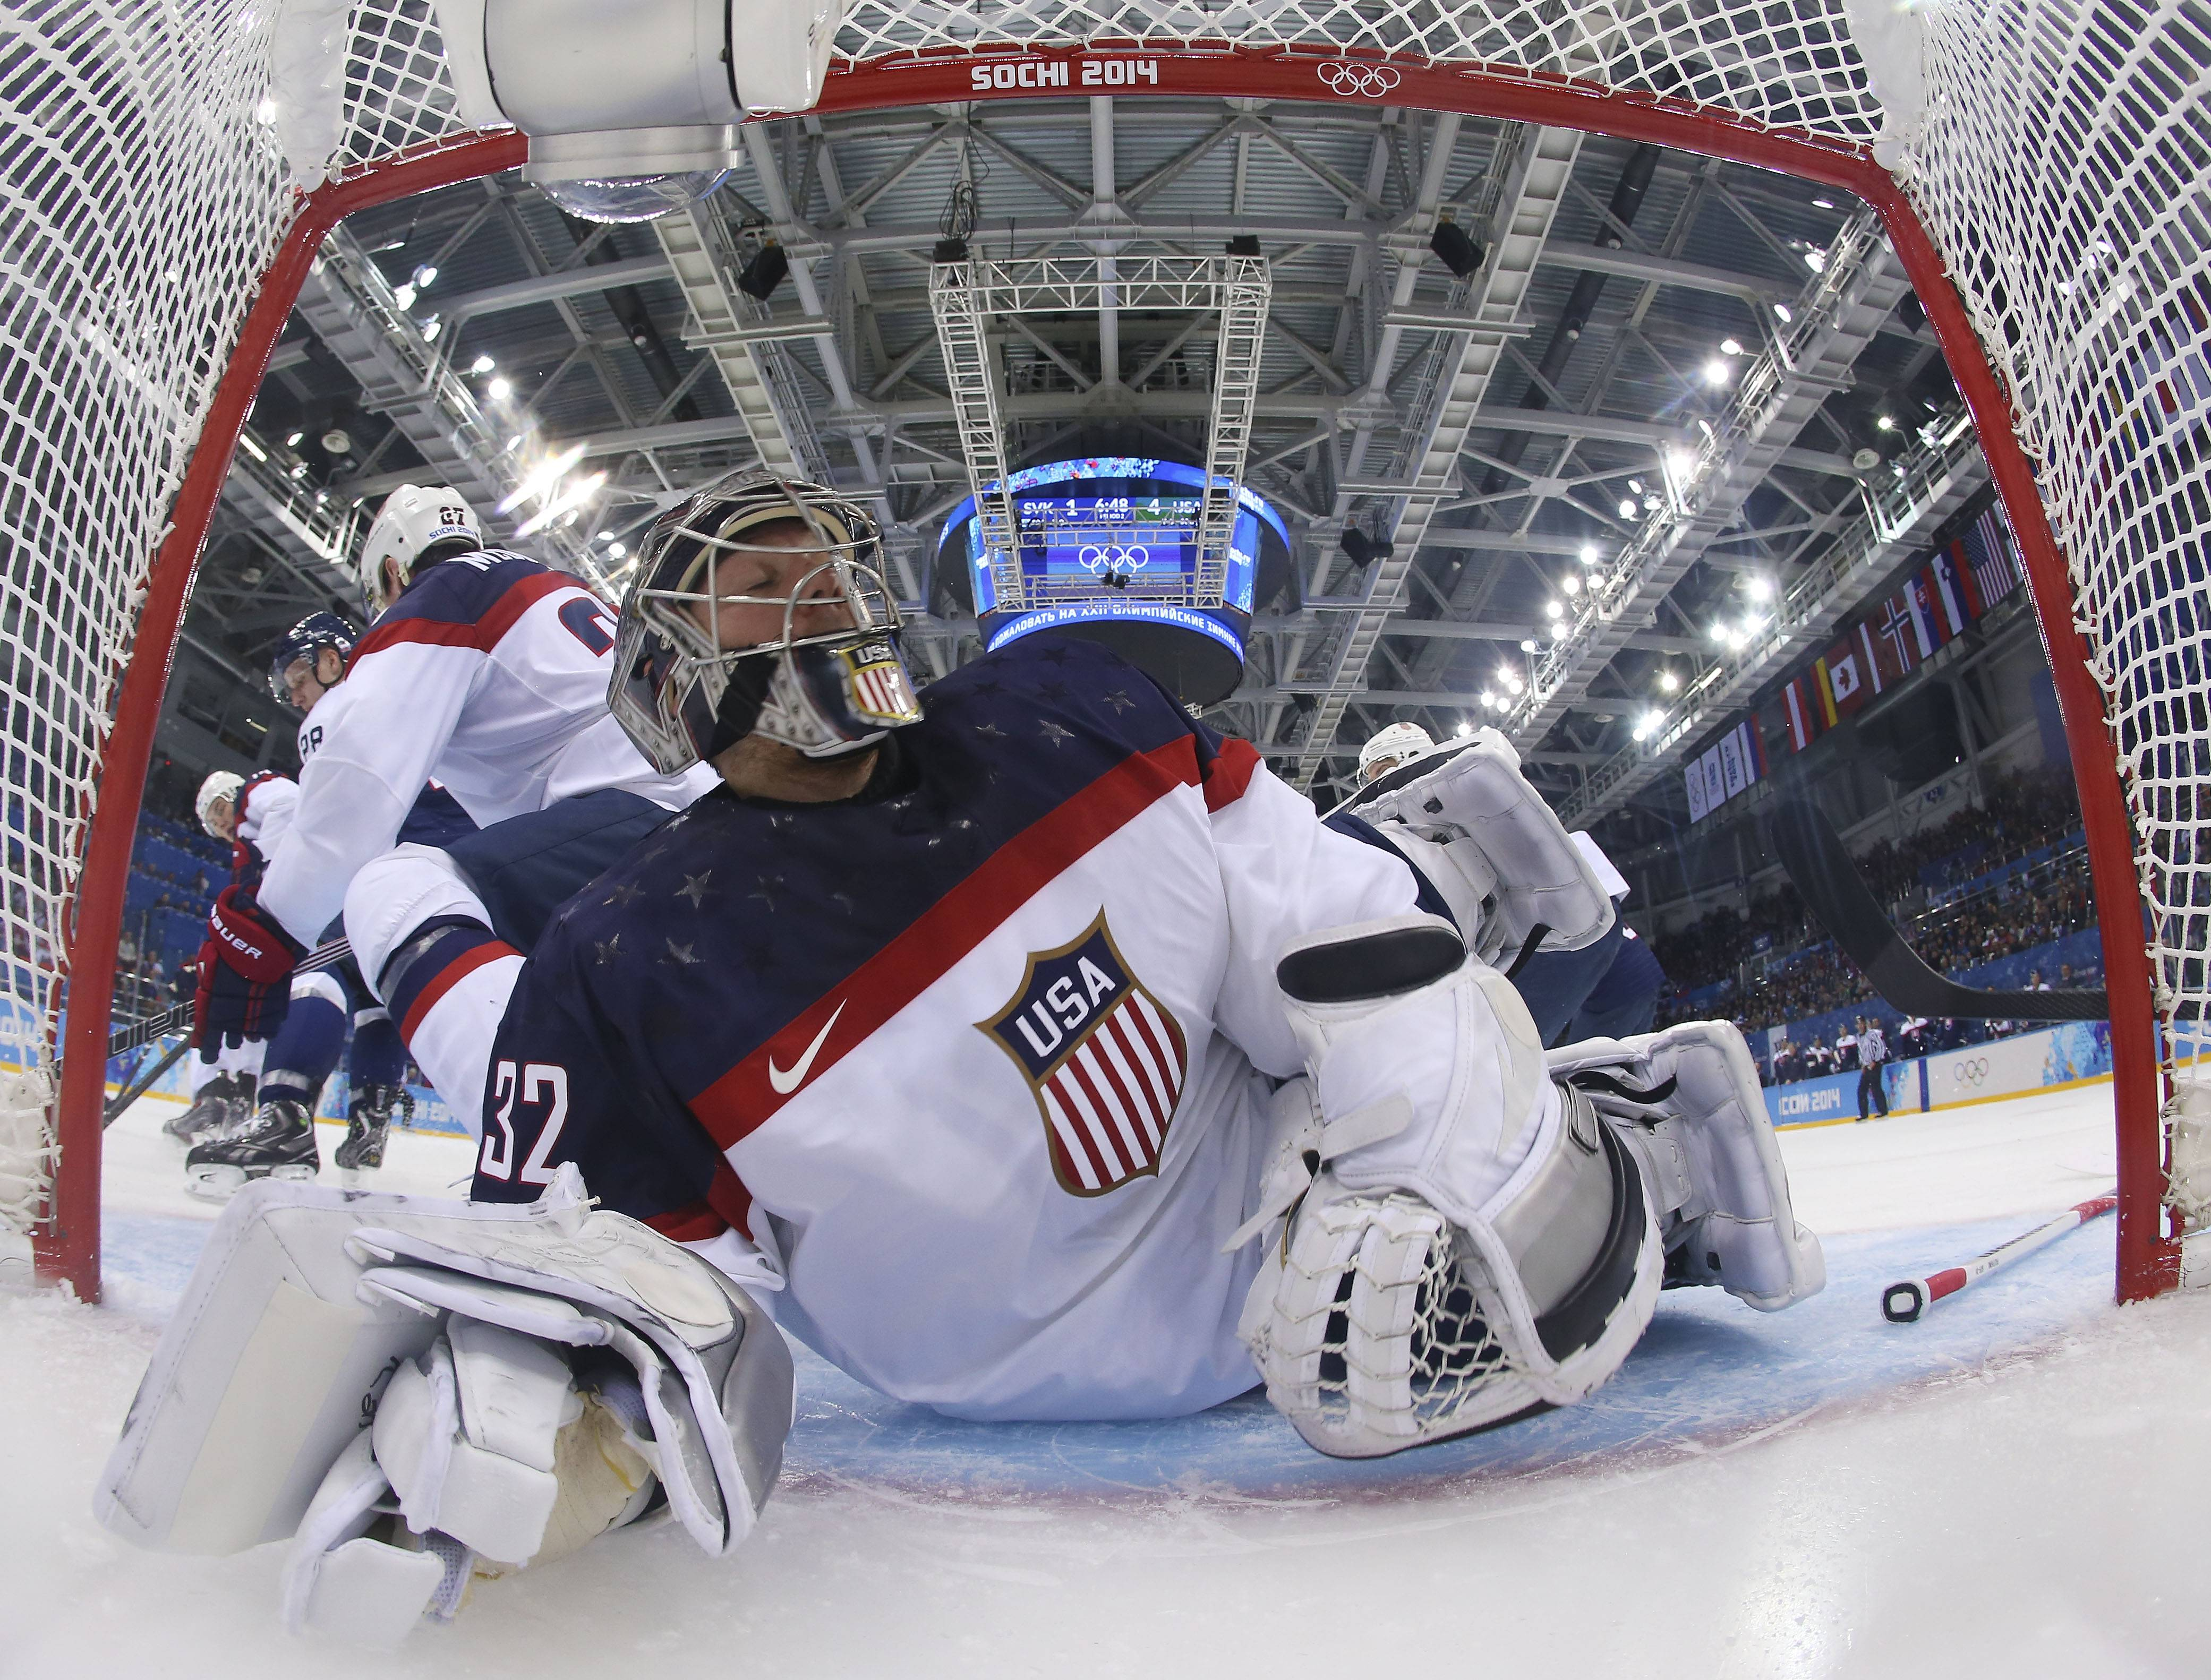 Jonathan Quick to start in goal for US vs Russia